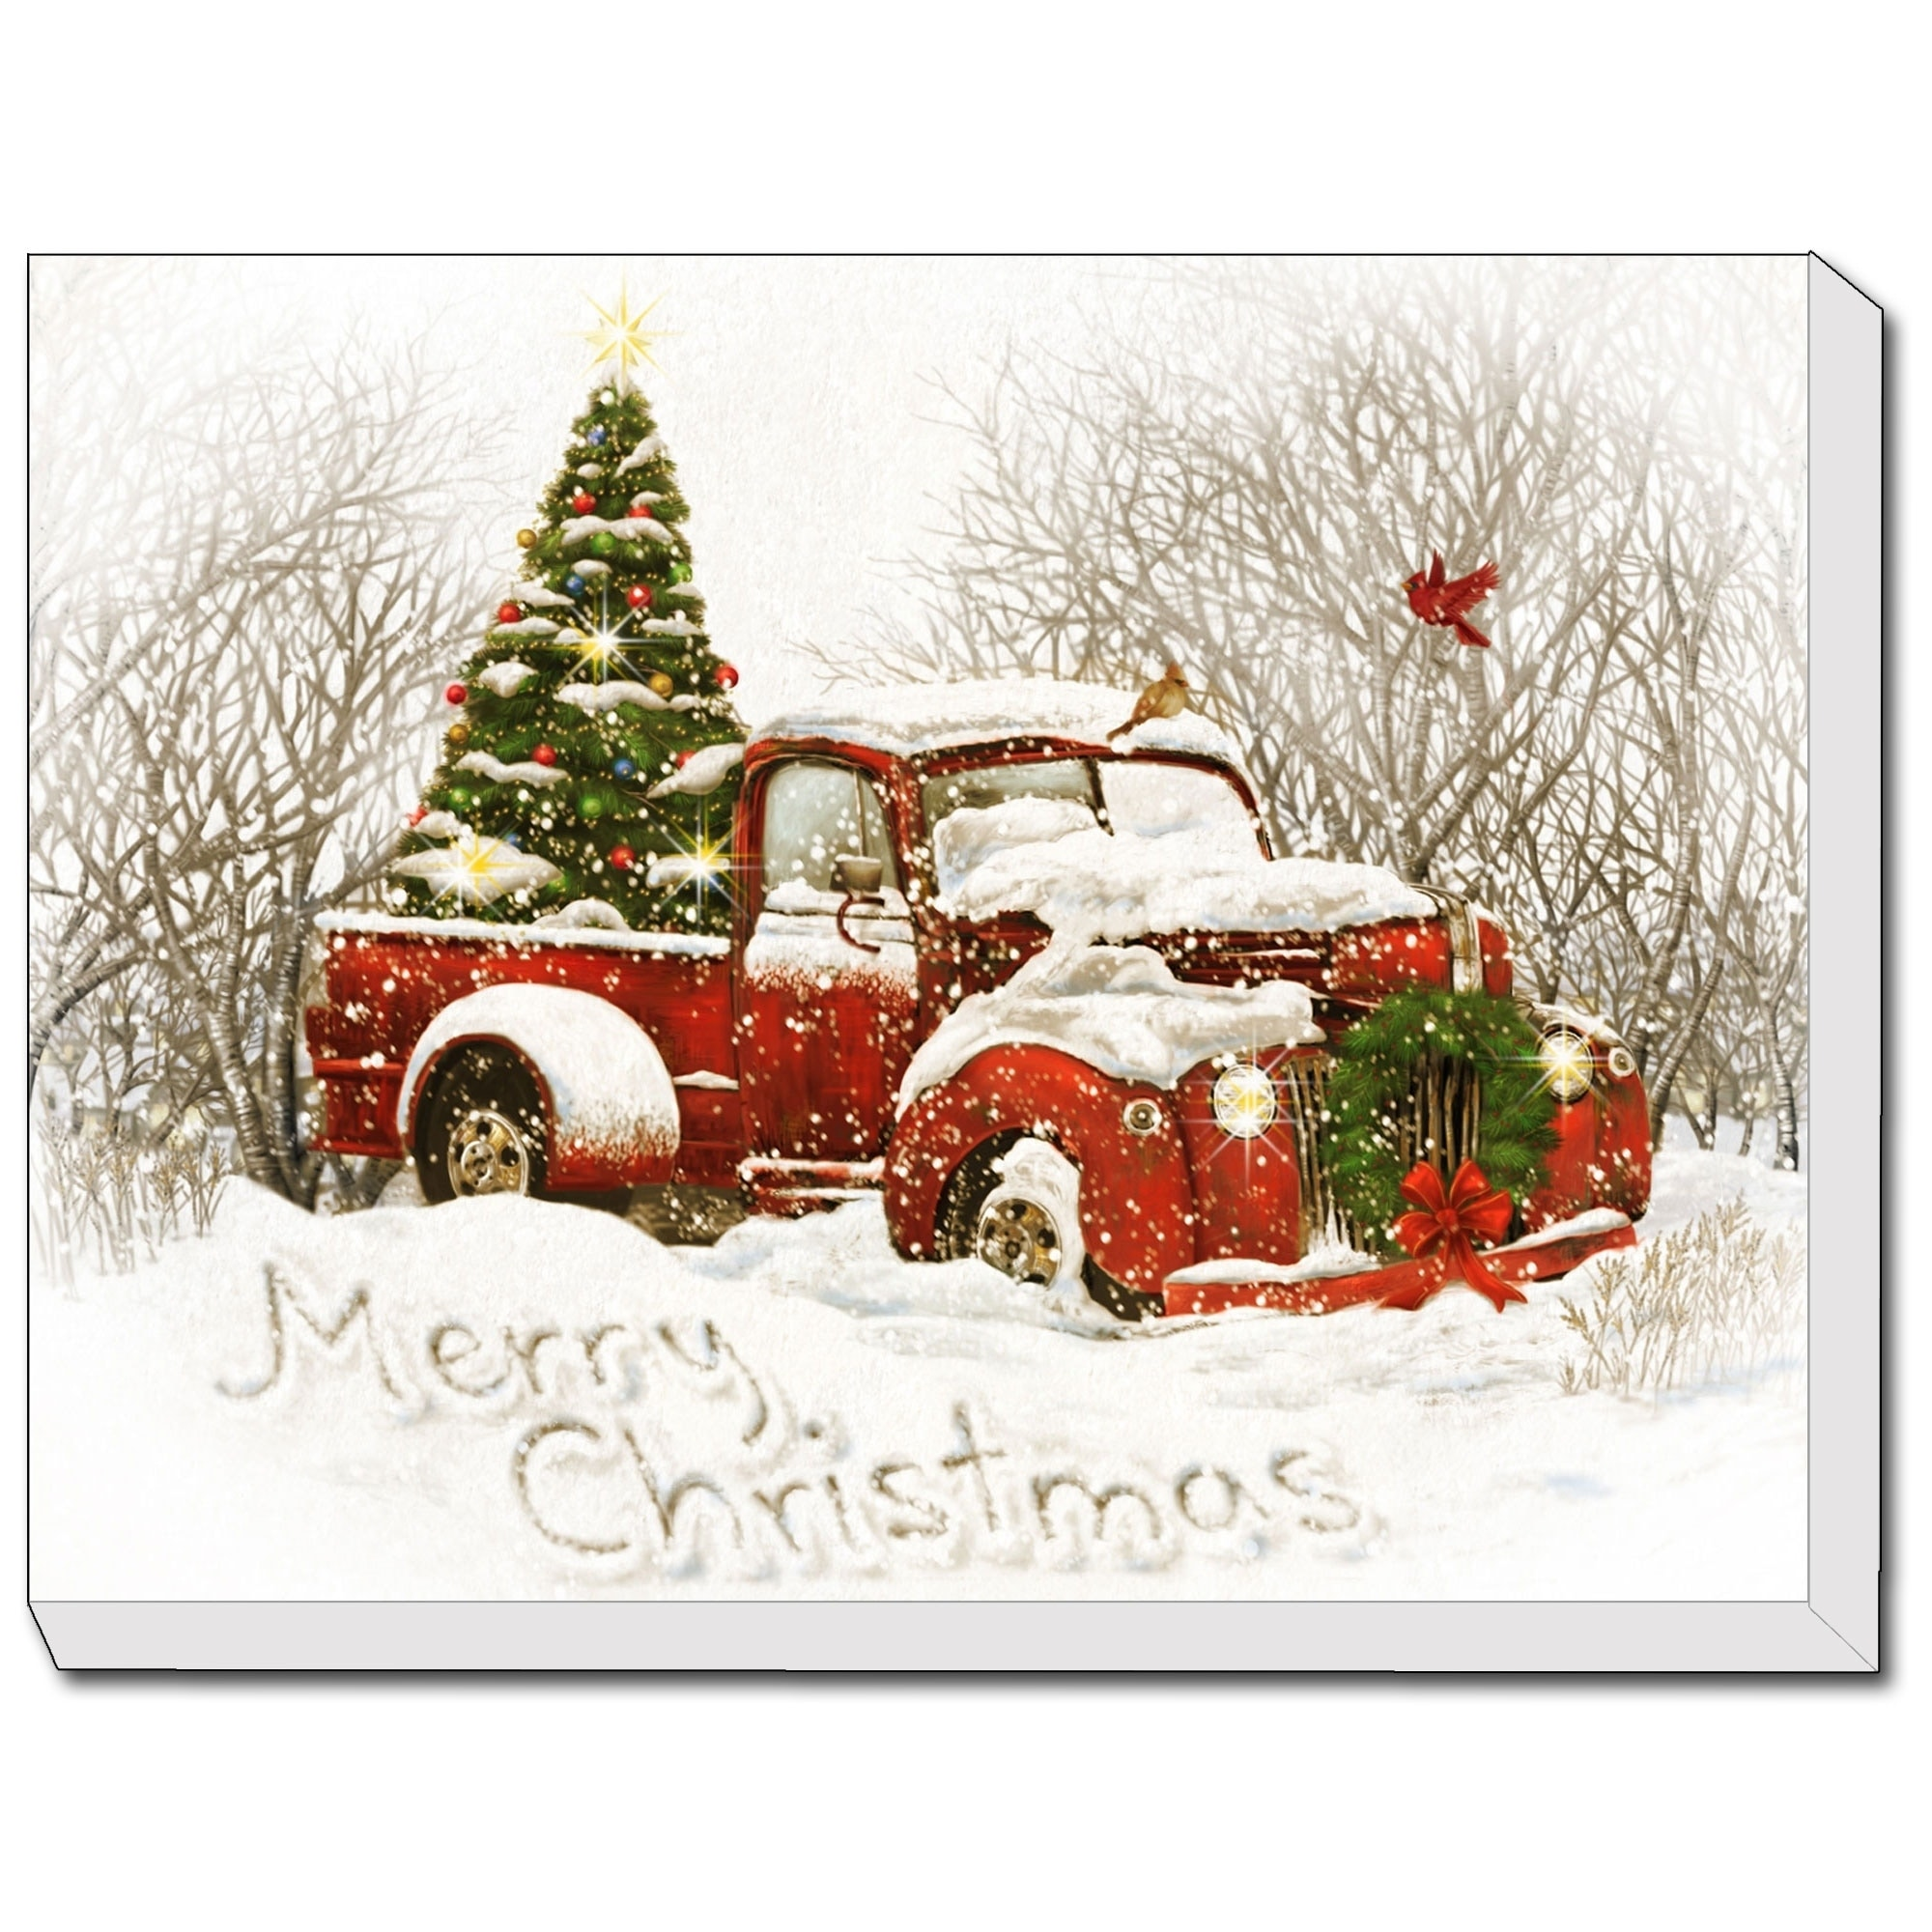 Vintage Christmas Tree Truck Led Lighted Canvas By Trendy Decor 4u Ready To Hang Printed Art Multi Overstock 27974002